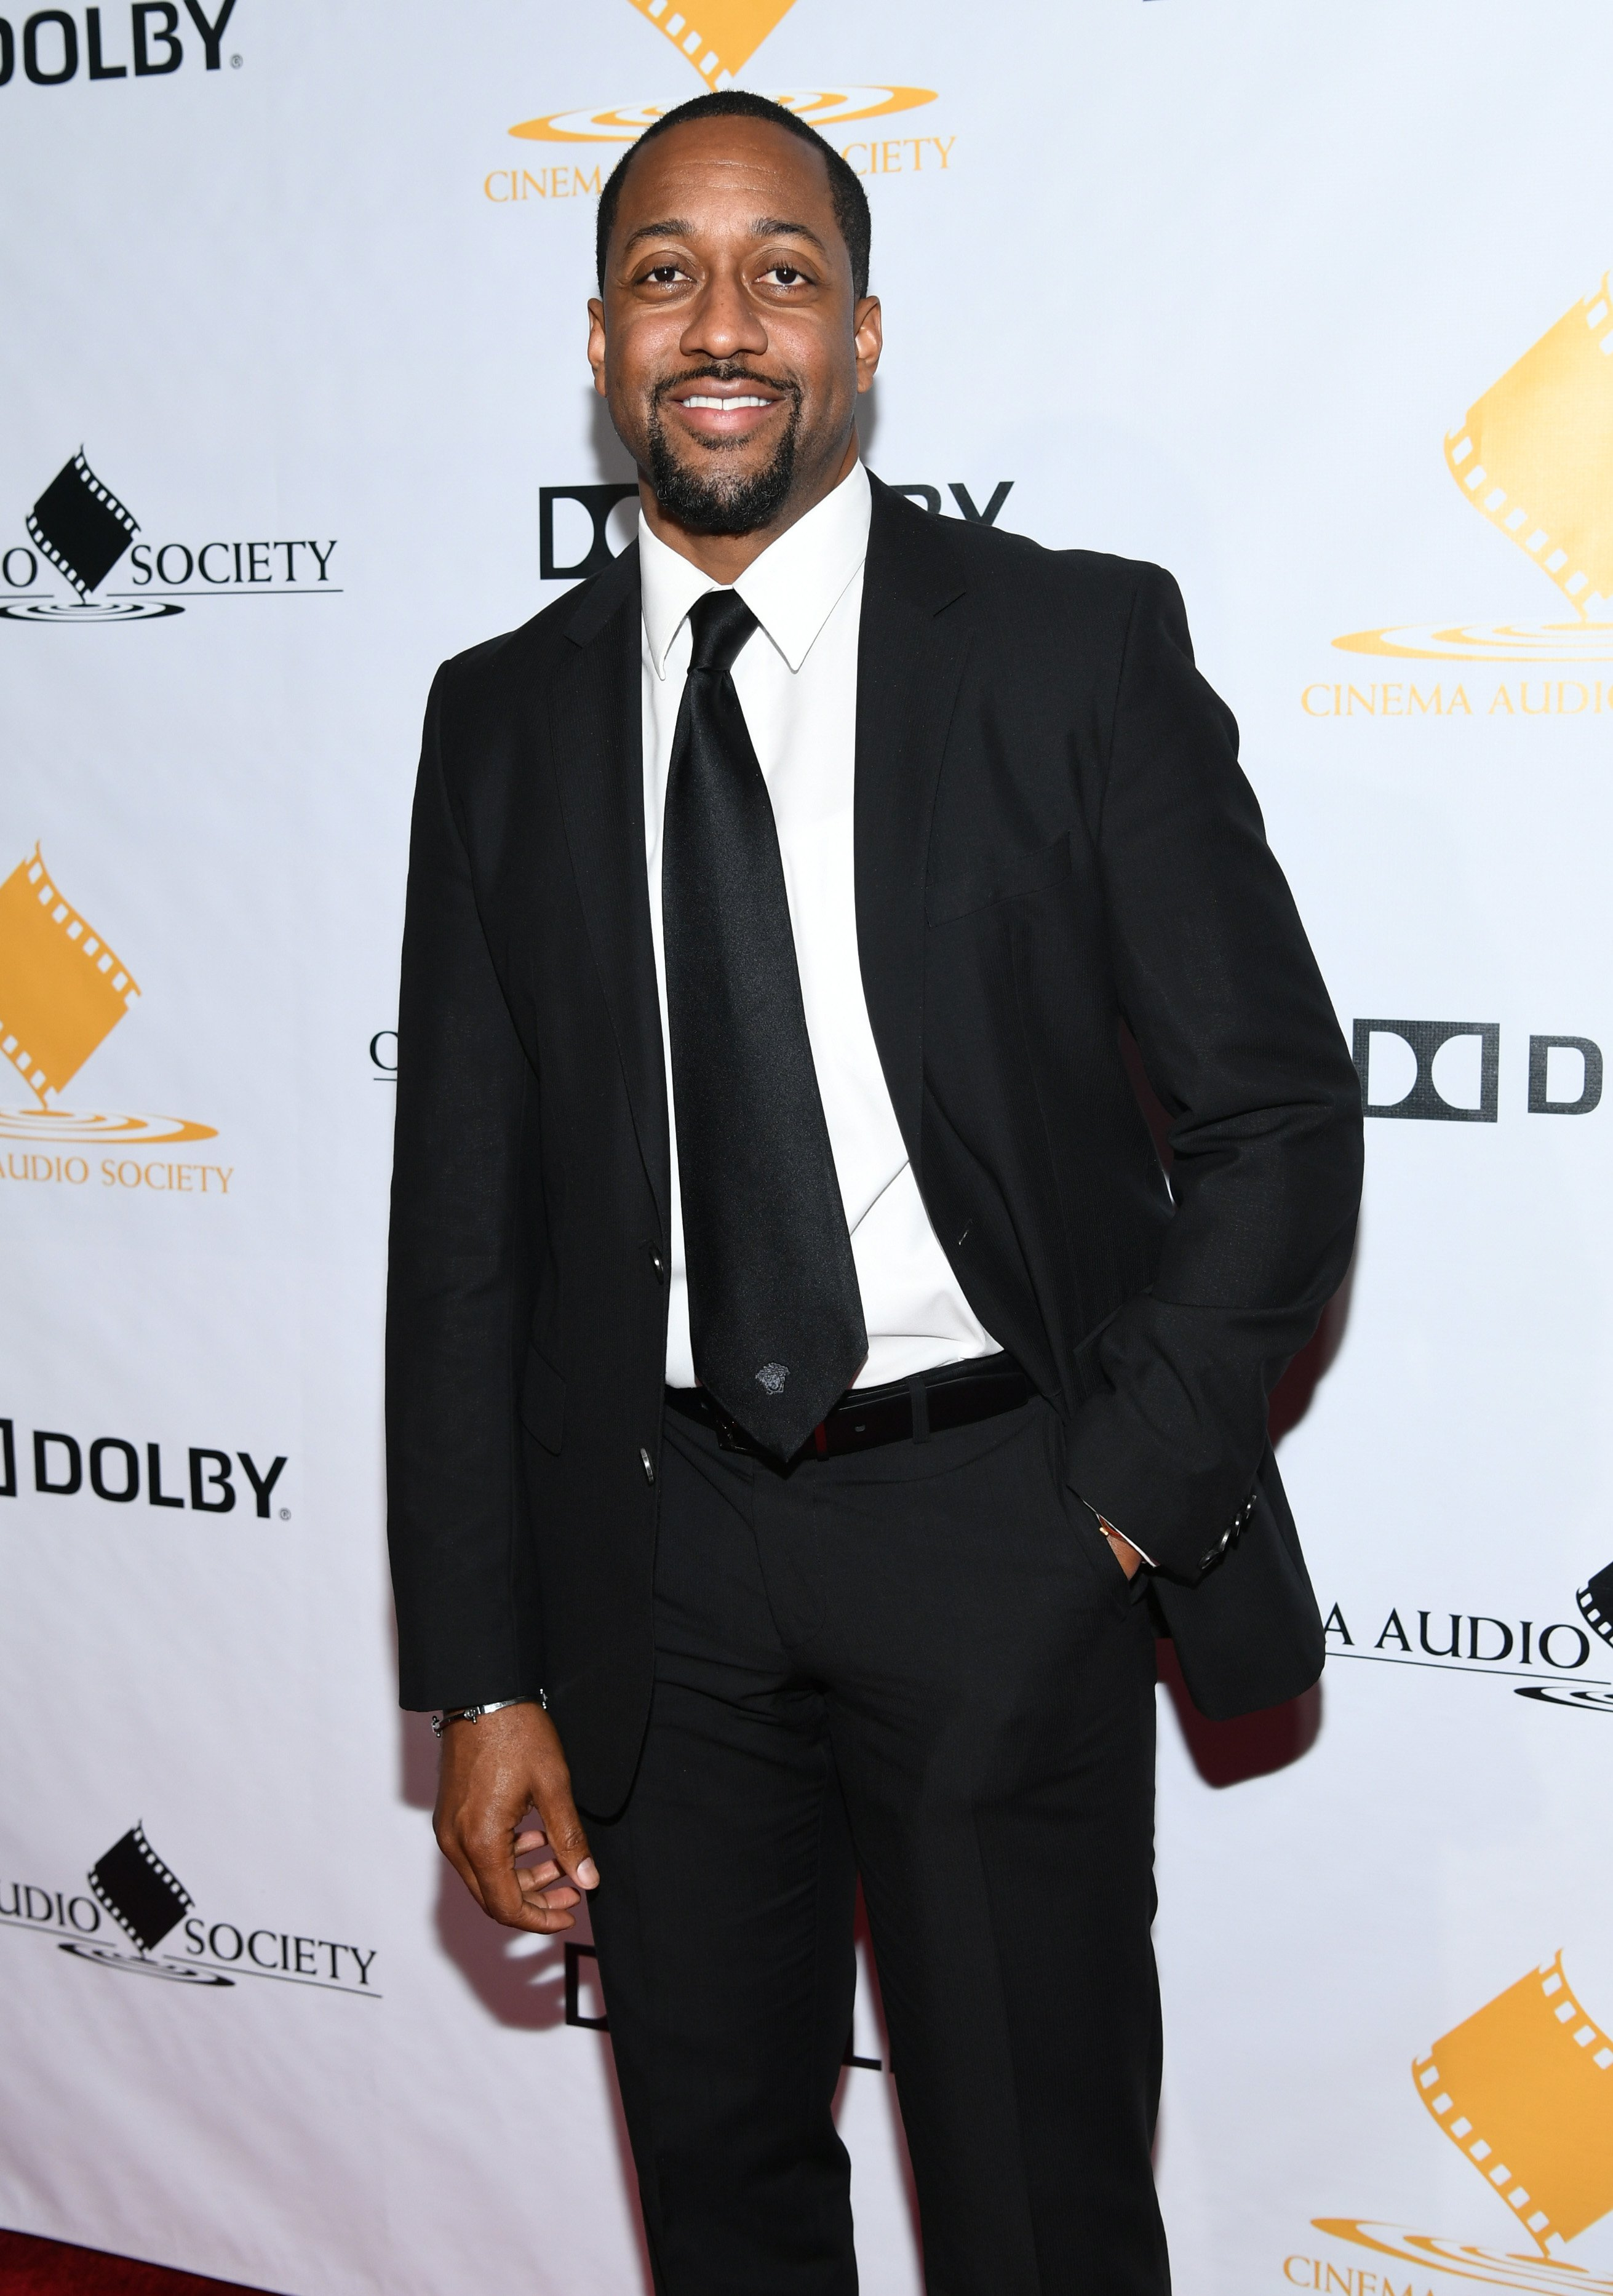 Jaleel White on February 24, 2018 in Los Angeles, California | Photo: Getty Images